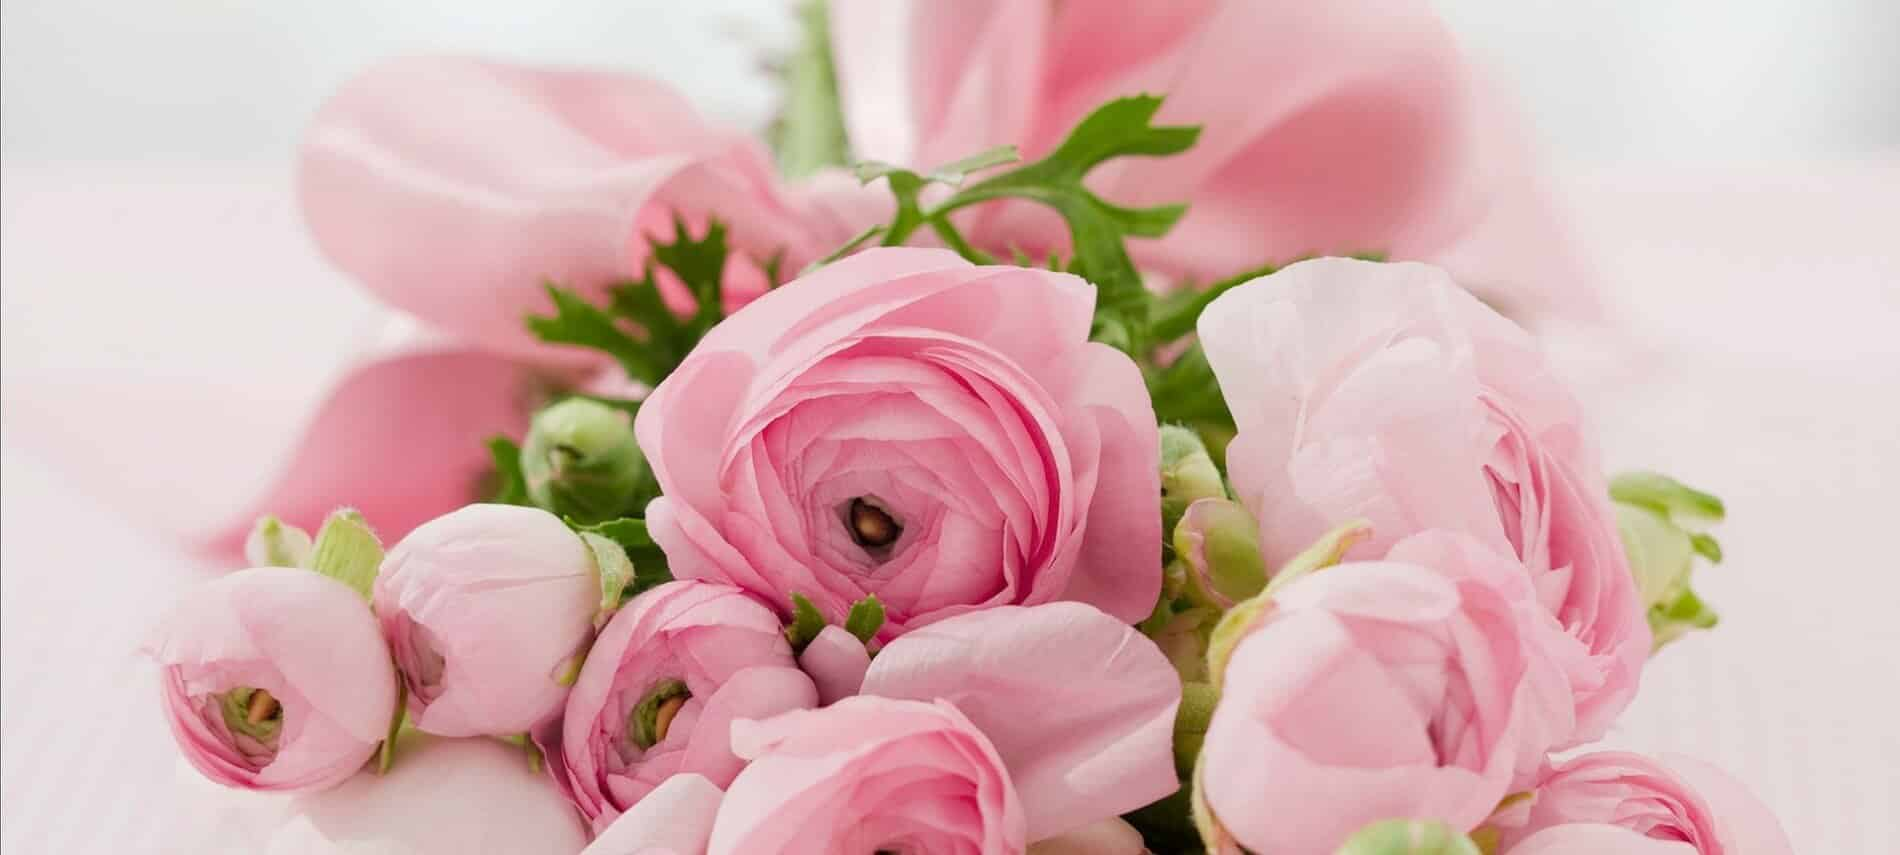 Pale pink peonies lie in a bouquet wrapped in a pink satin ribbon.